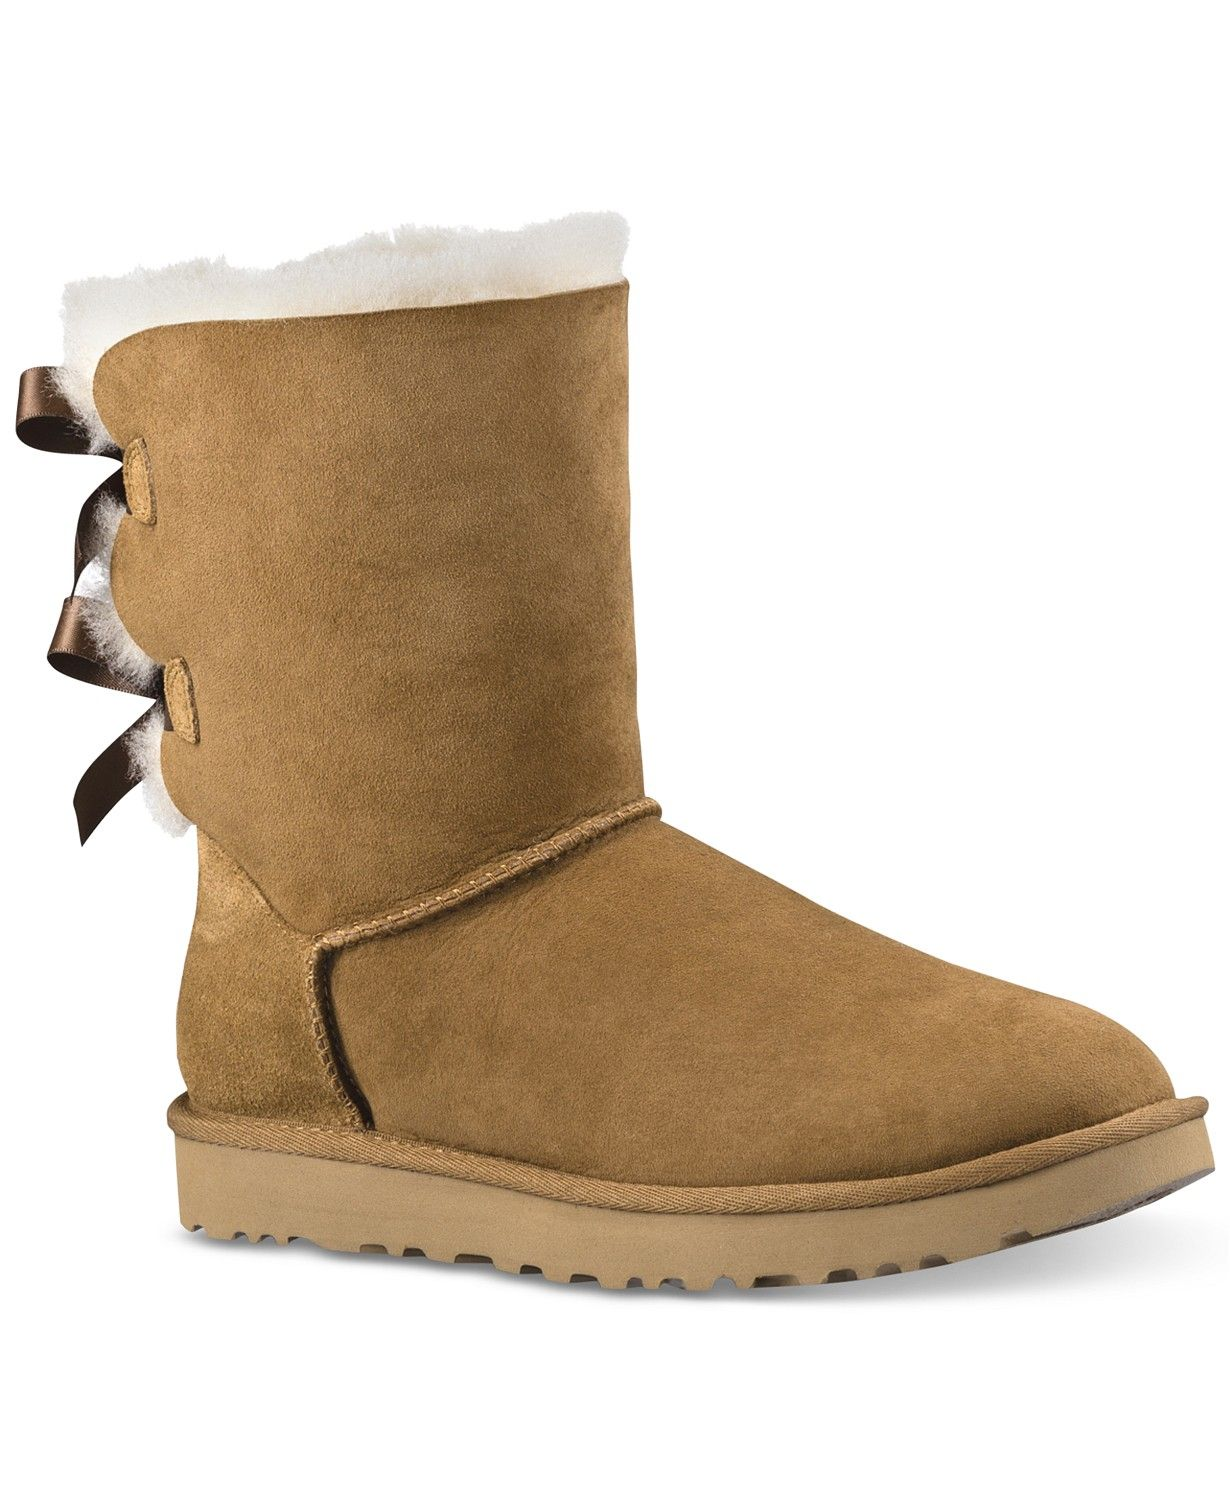 460a390aae2c UGG® Women s Classic II Genuine Shearling Lined Short Boots Shoes - Boots -  Macy s